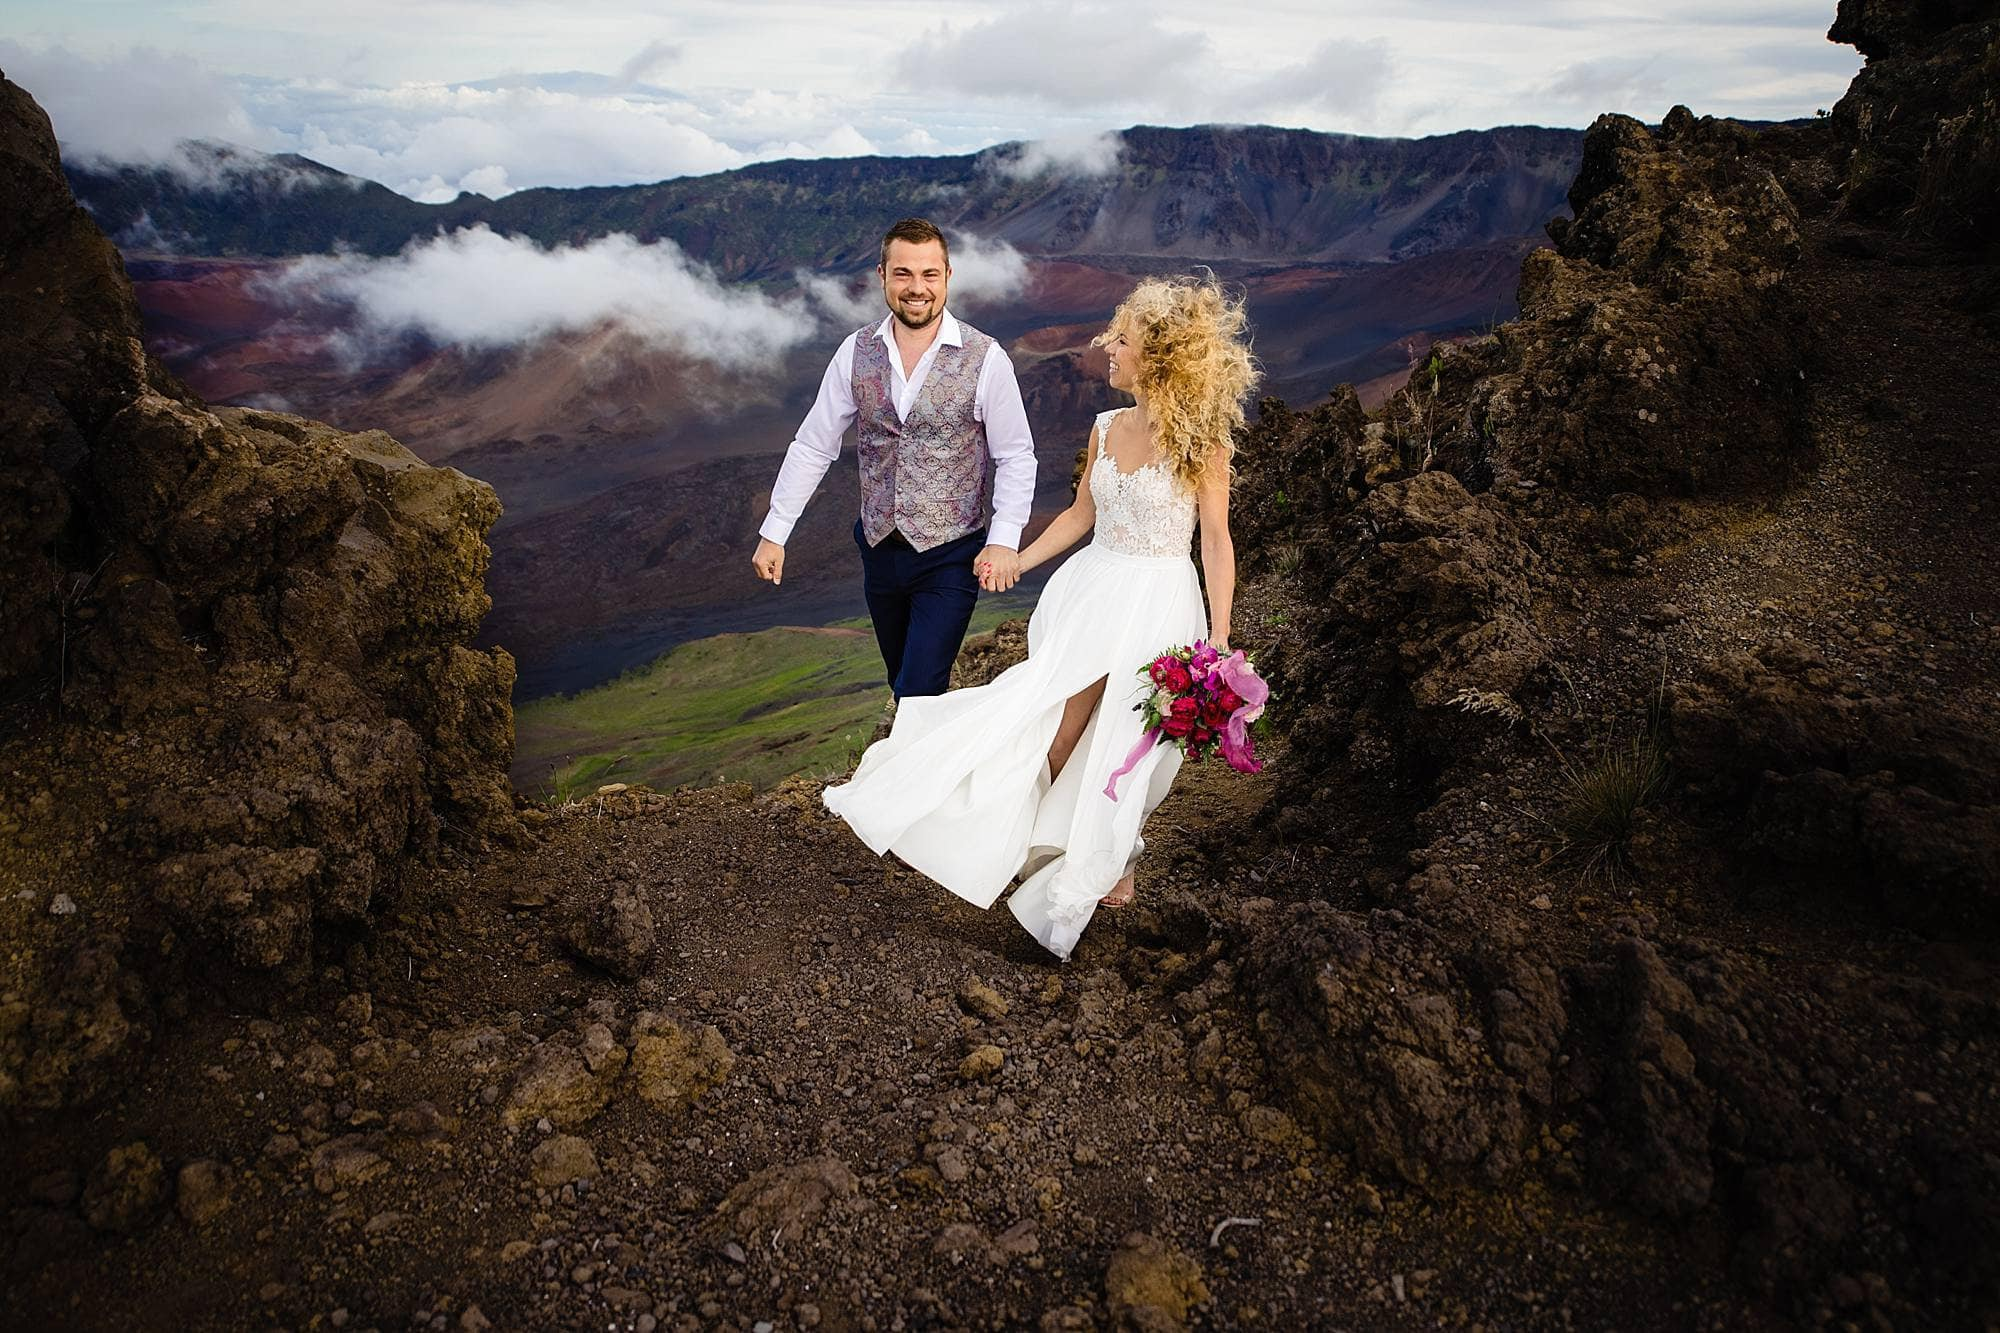 Austrian couple eloping in maui